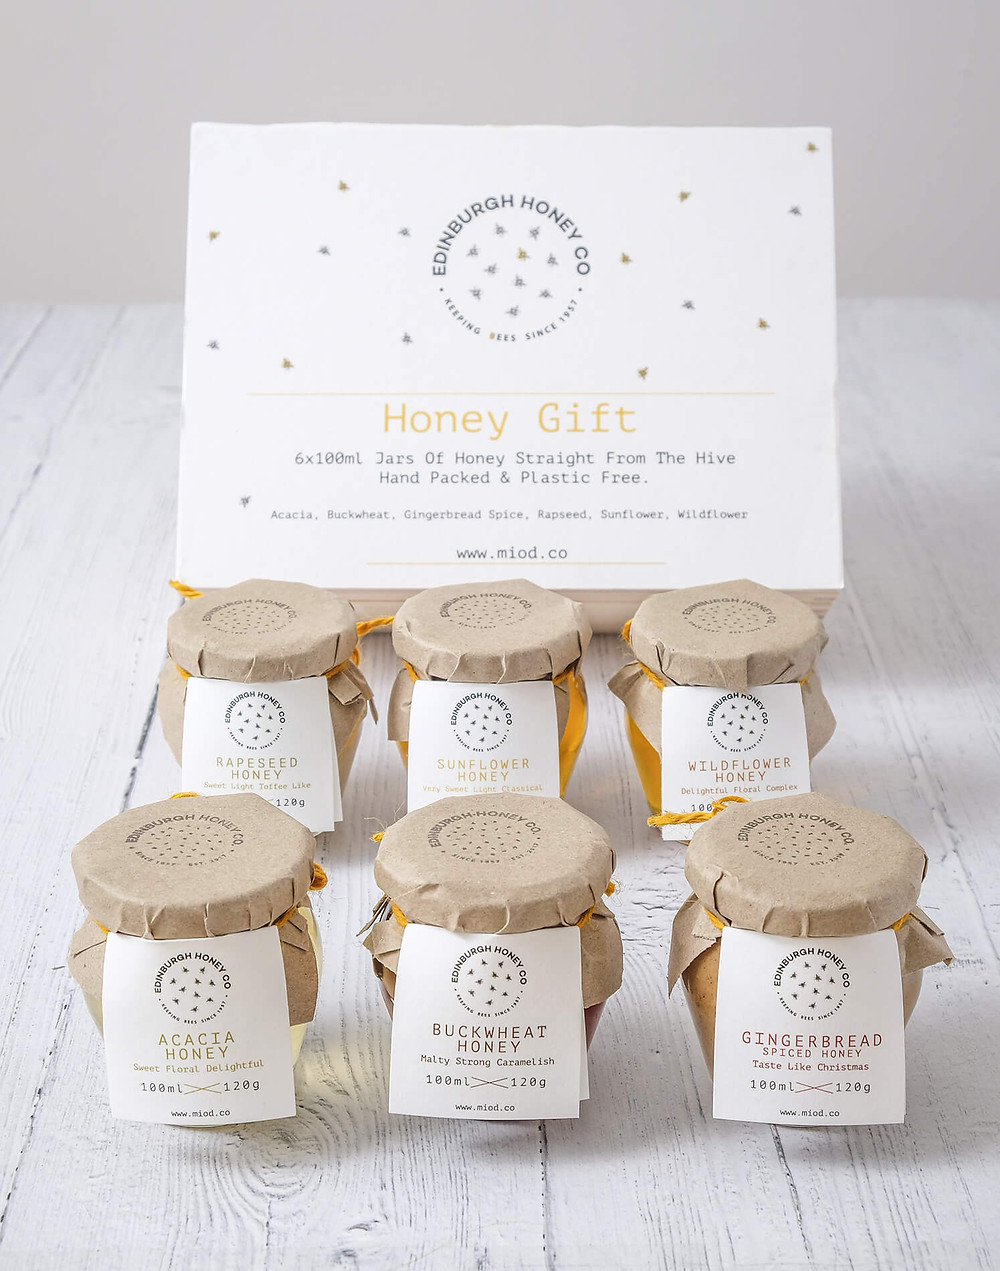 Handpicked Honey Gift Set in a wooden box, containing Acacia, Buckwheat, Gingerbread, Rapeseed, Sunflower & Wildflower Honey.